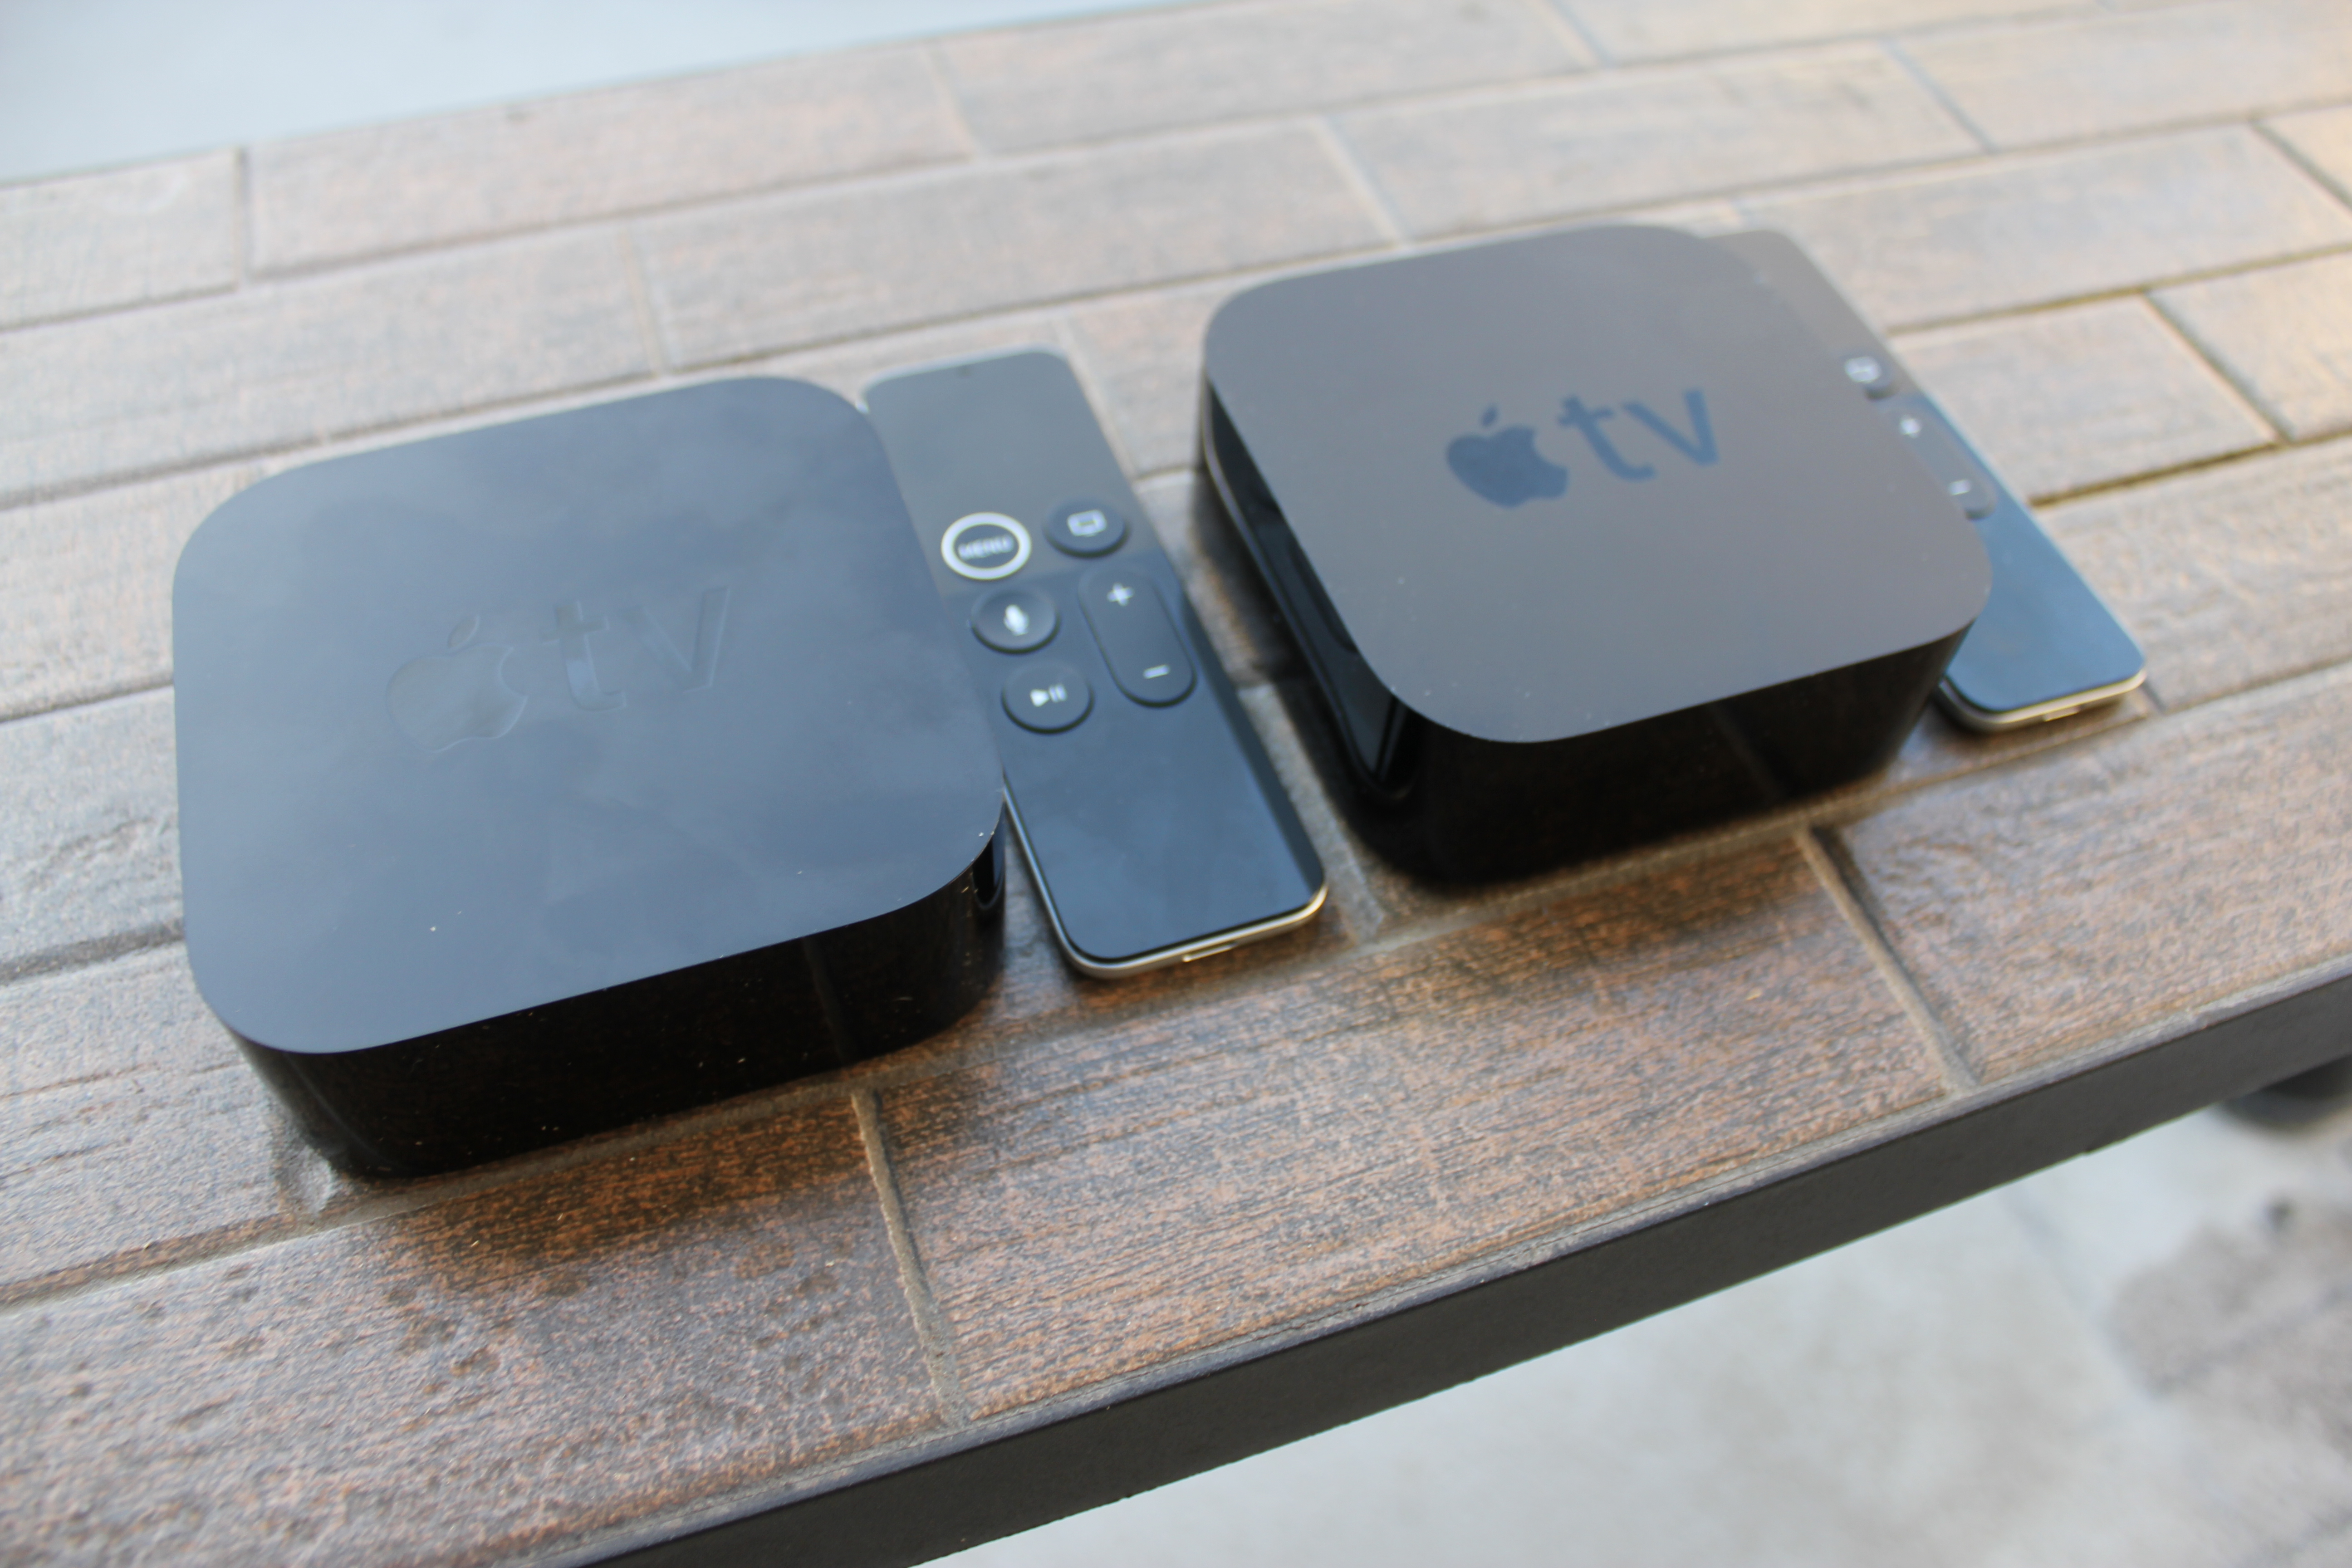 Apple's TV subscription service starts in 2019 to compete with